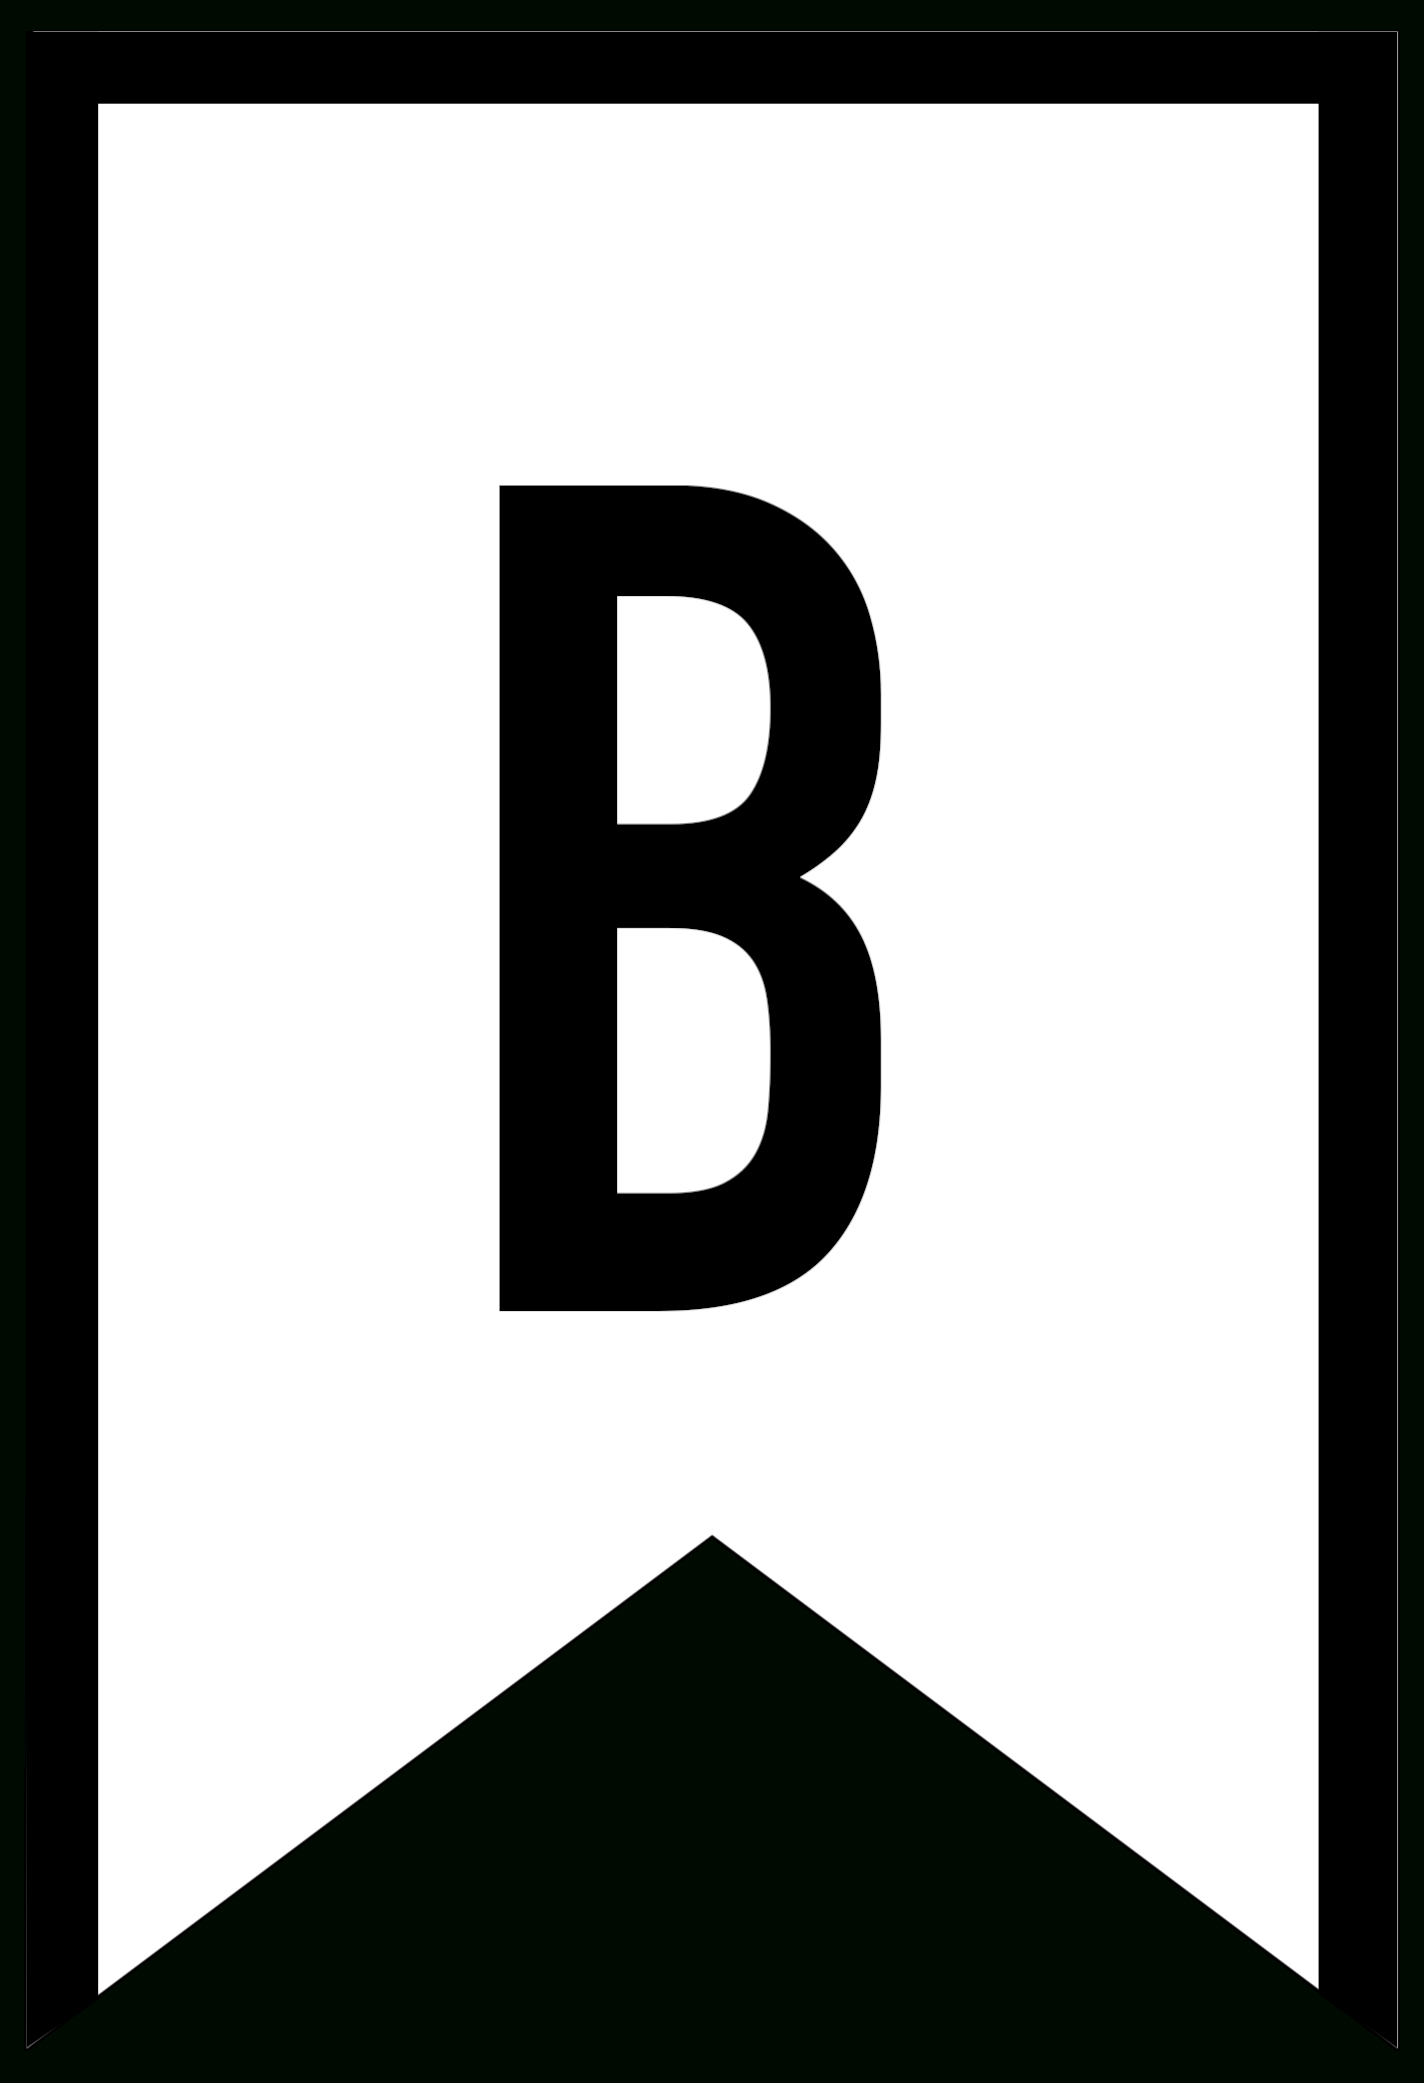 Banner Templates Free Printable Abc Letters - Paper Trail Design - Free Printable Alphabet Letters For Banners